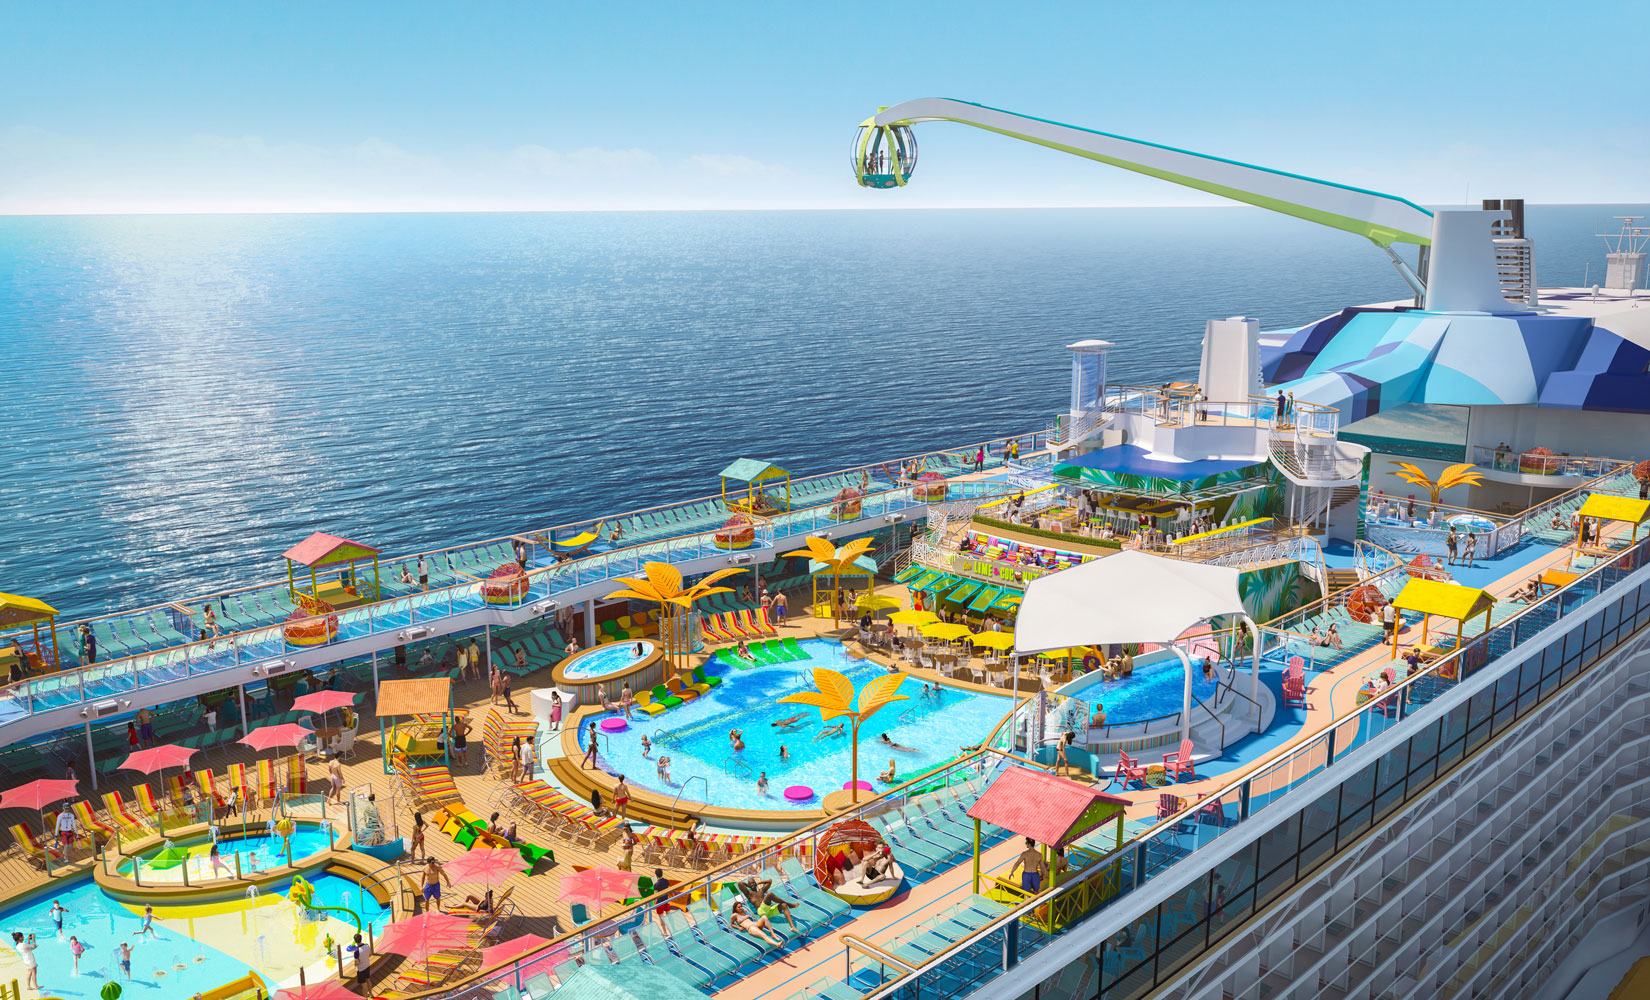 Royal Caribbean Odyssey of the Seas – Inaugural Season Now Sailing From Haffa, Israel in May 2021